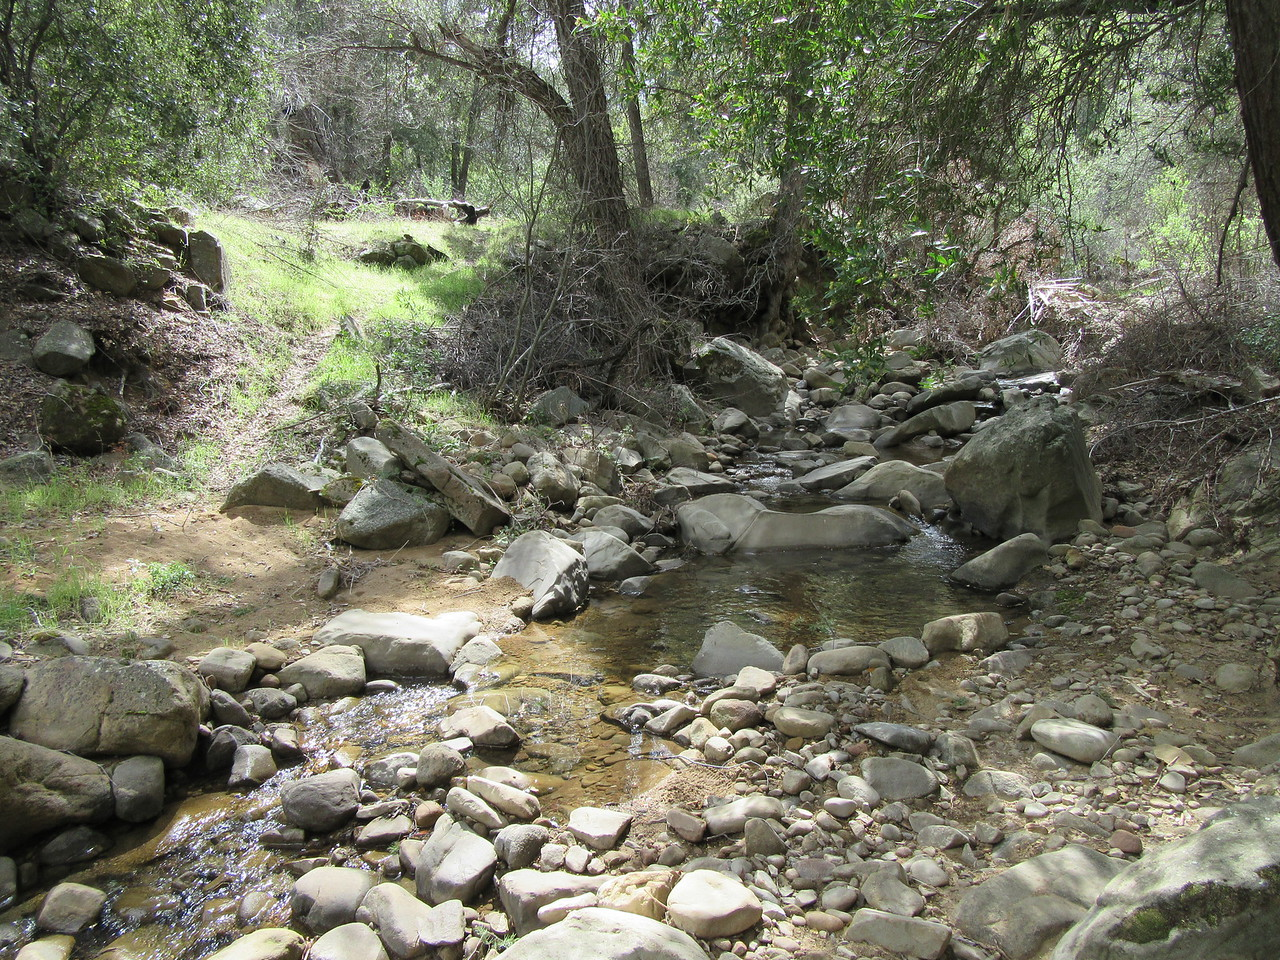 ... watching the Sisquoc shrink as I hiked upstream, ...